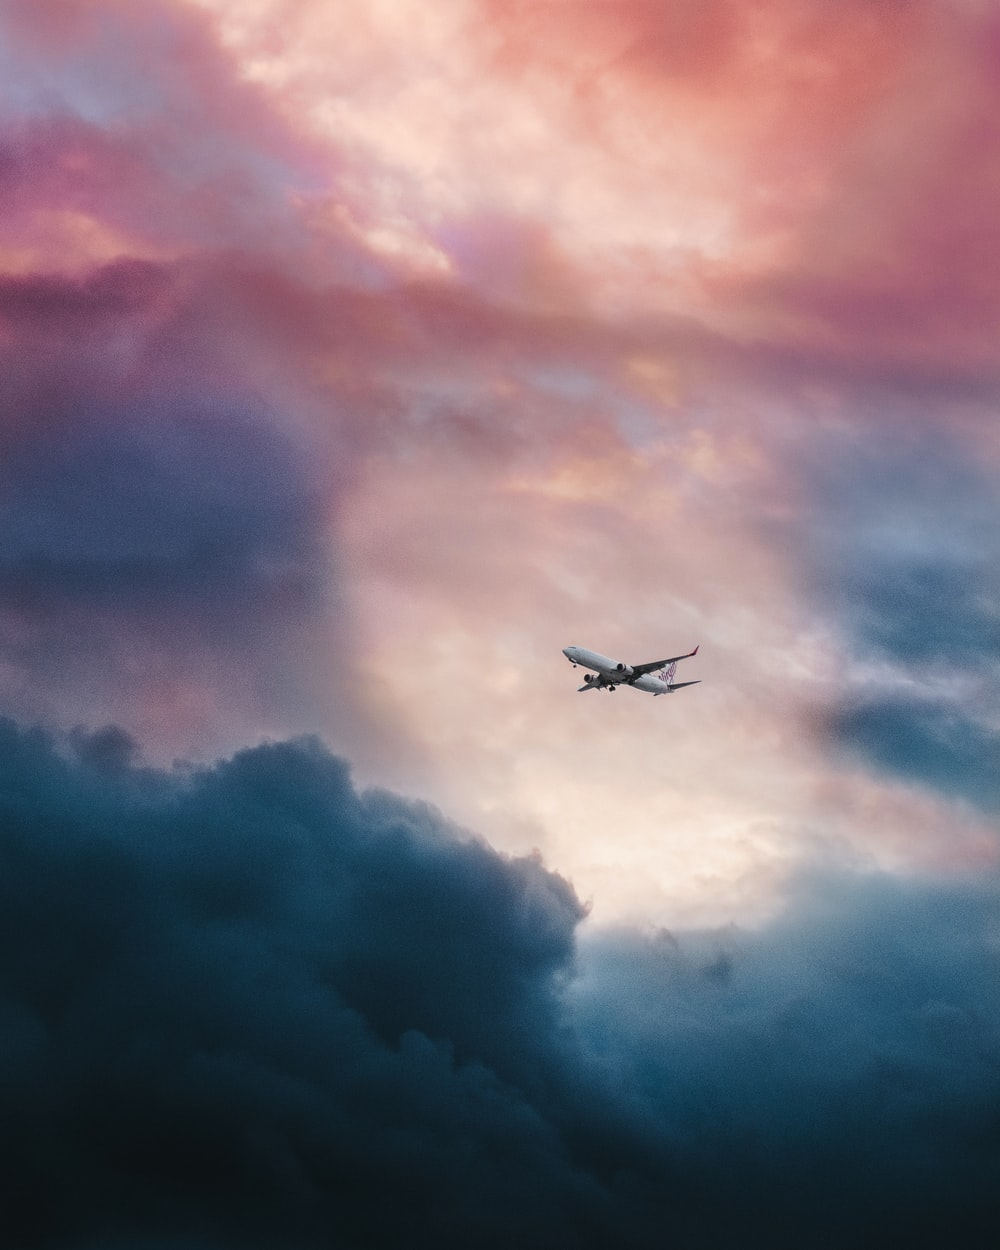 Best 20 Airplane Pictures Hd Download Free Images On Unsplash Ladaku 4g White Plane Flying Over Gray Clouds